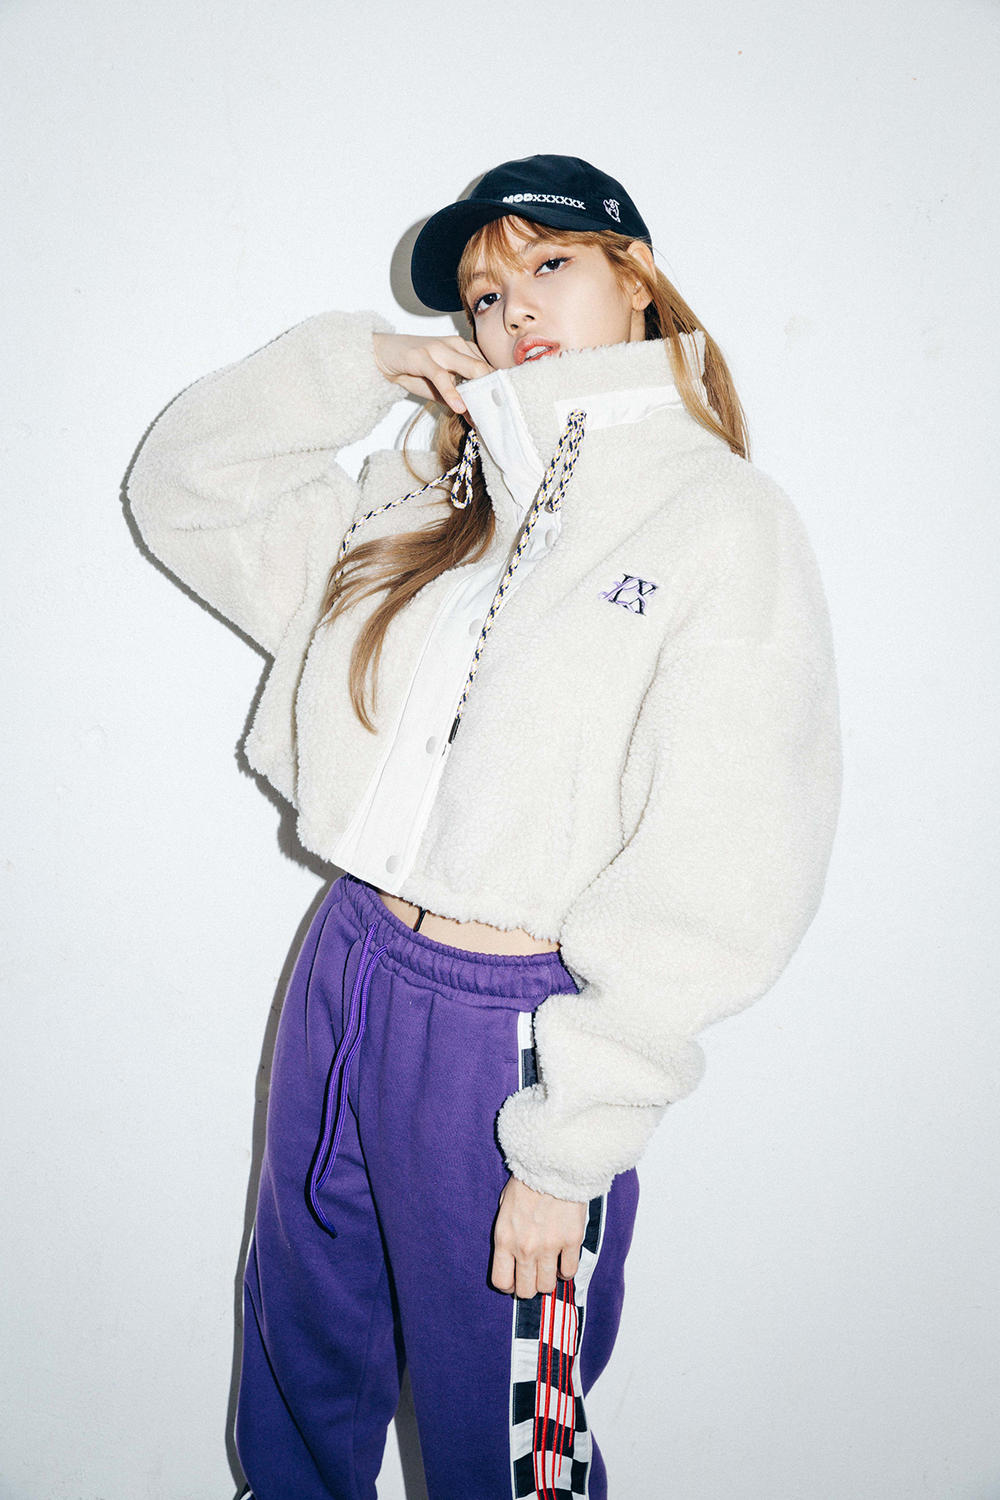 X-Girl Nonagon Blackpink Lisa Campaign Collaboration K-Pop White Jacket Purple Pants Black Cap